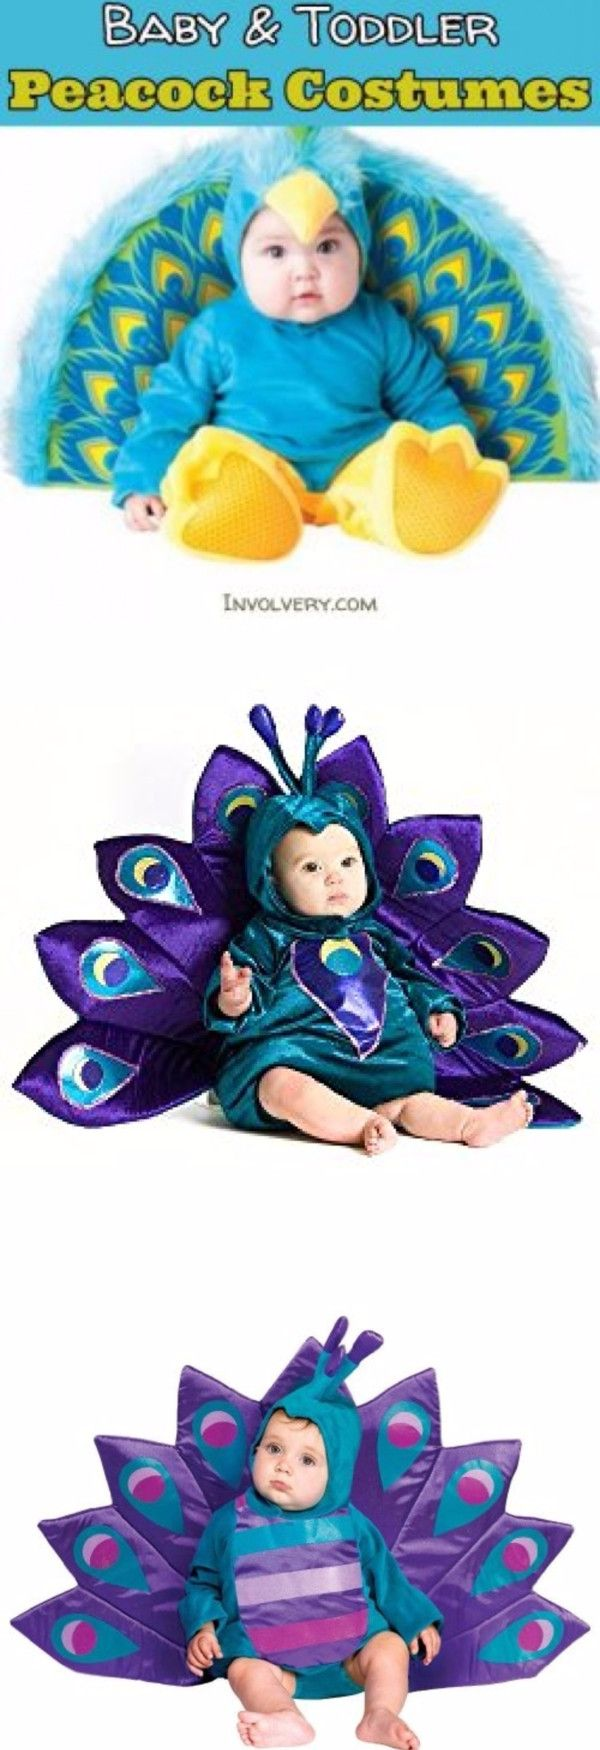 Baby Peacock Halloween Costume Ideas - toddler peacock costumes too